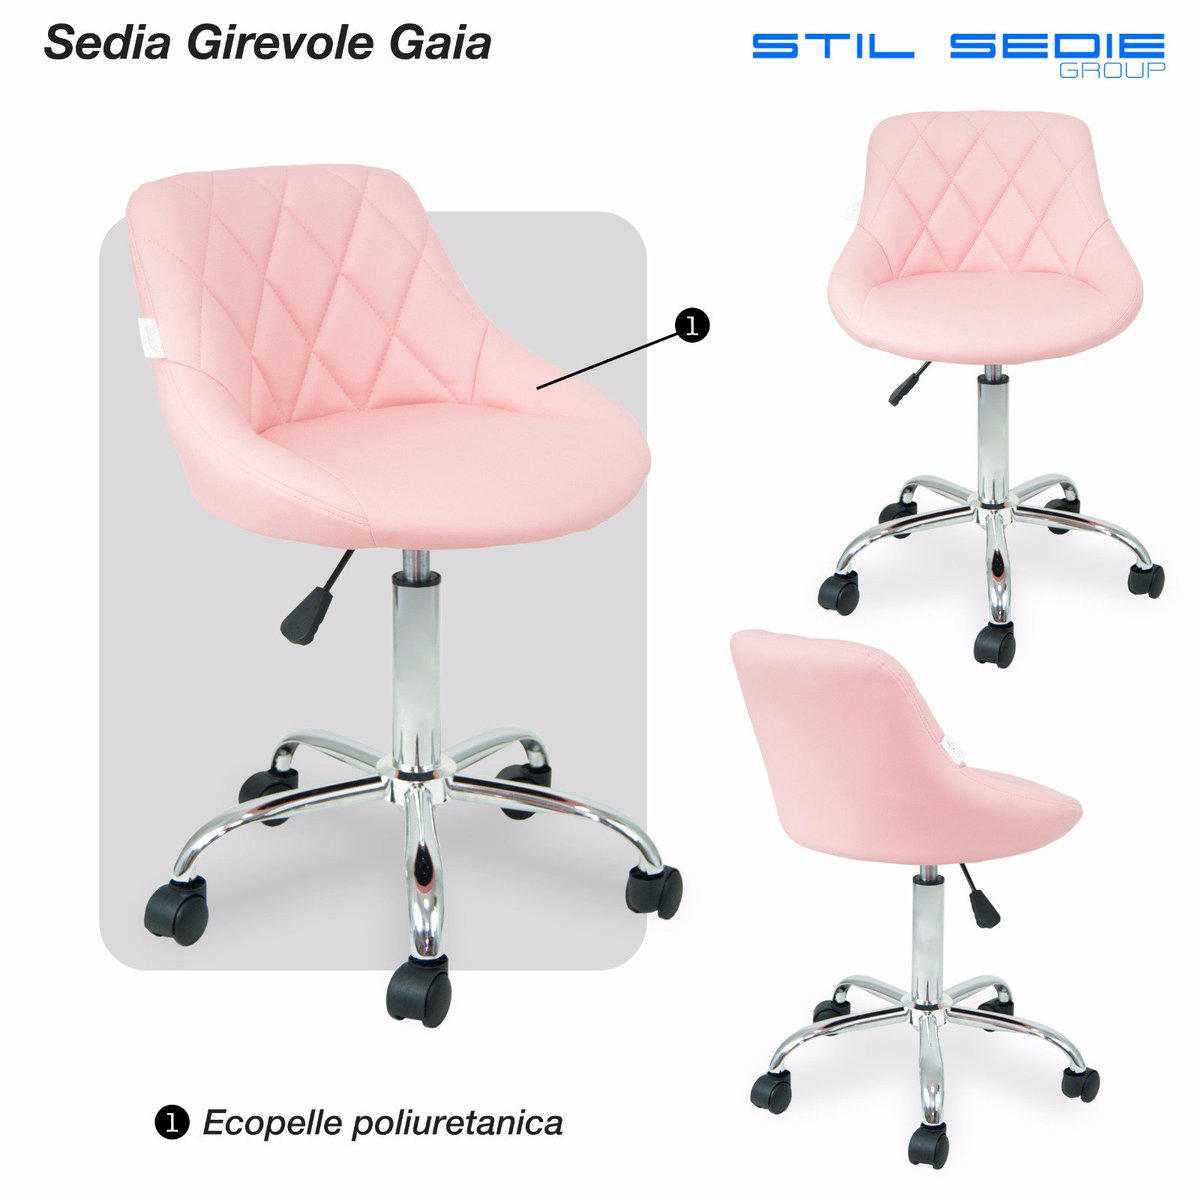 Sedia Girevole English Stil Sedie Group Stilsedie Twitter